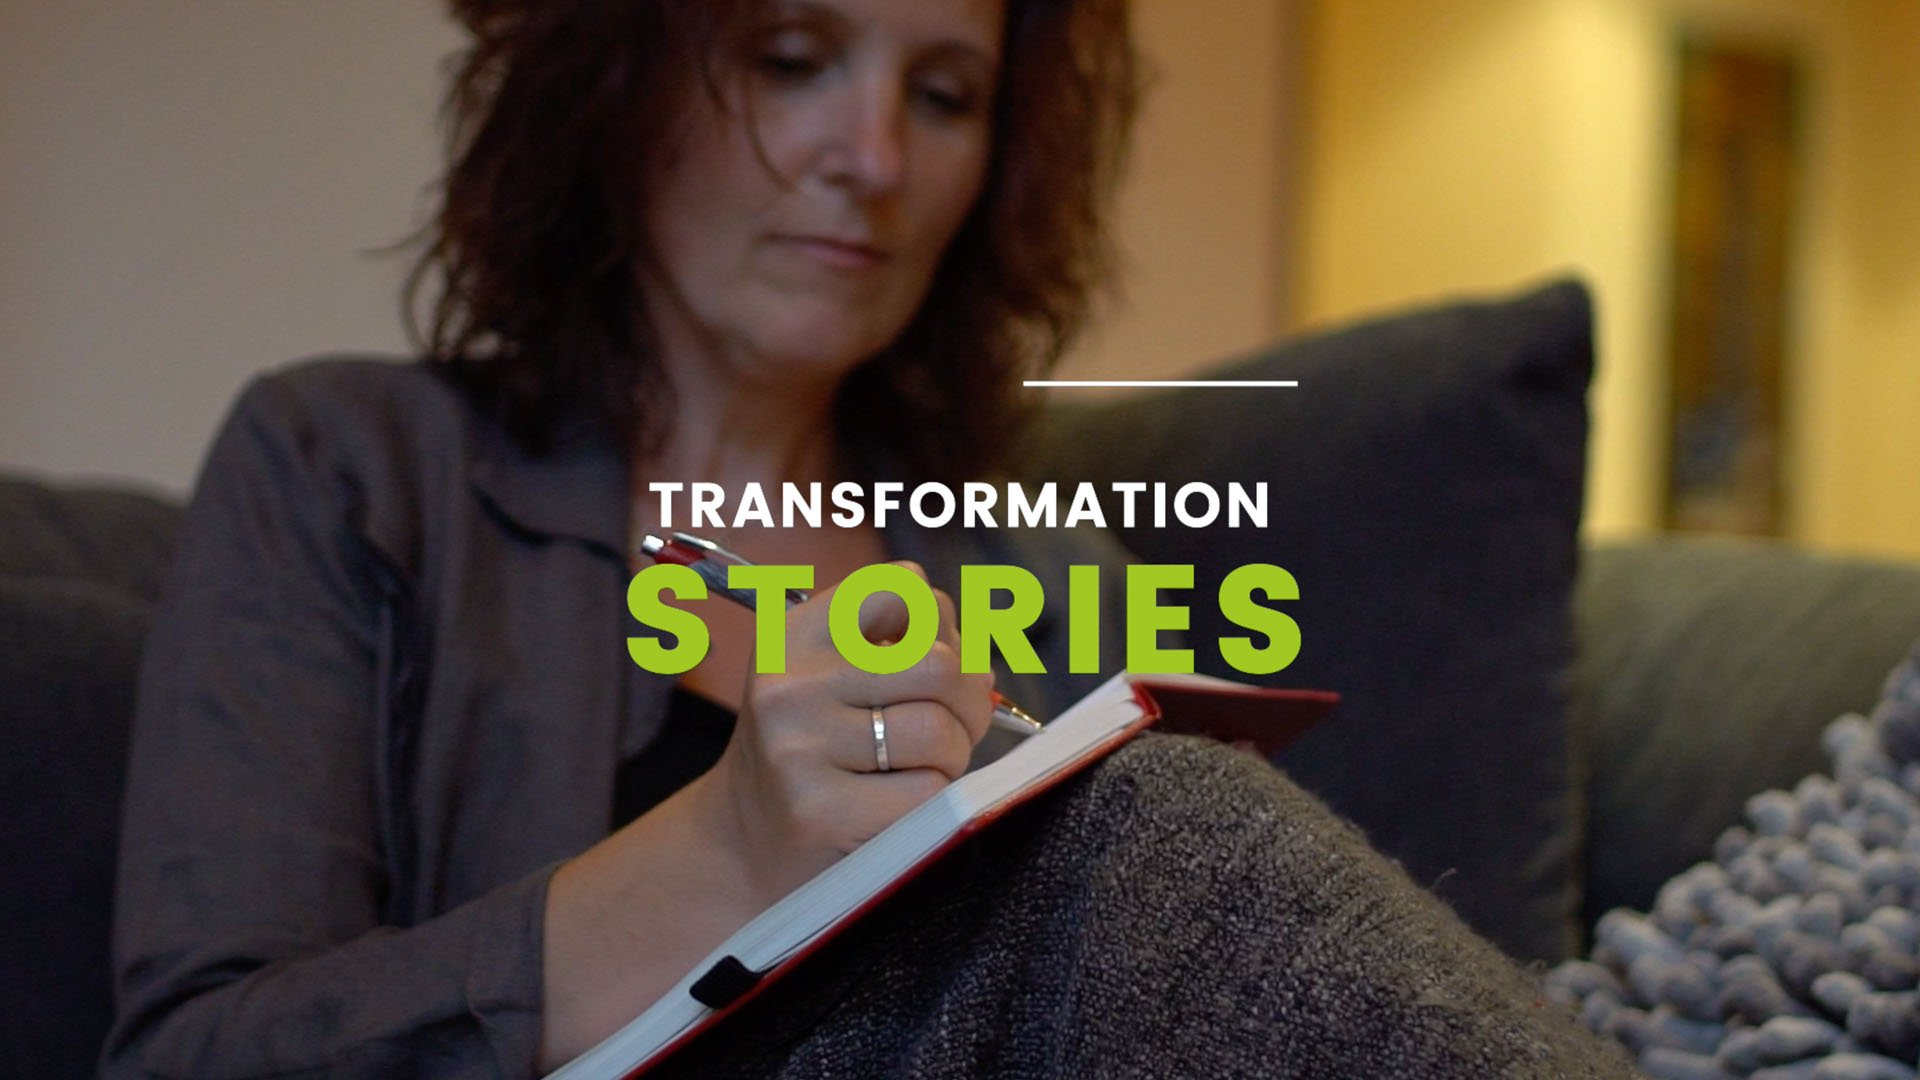 Woman writing in a book - thumbnail image of the testimonial video